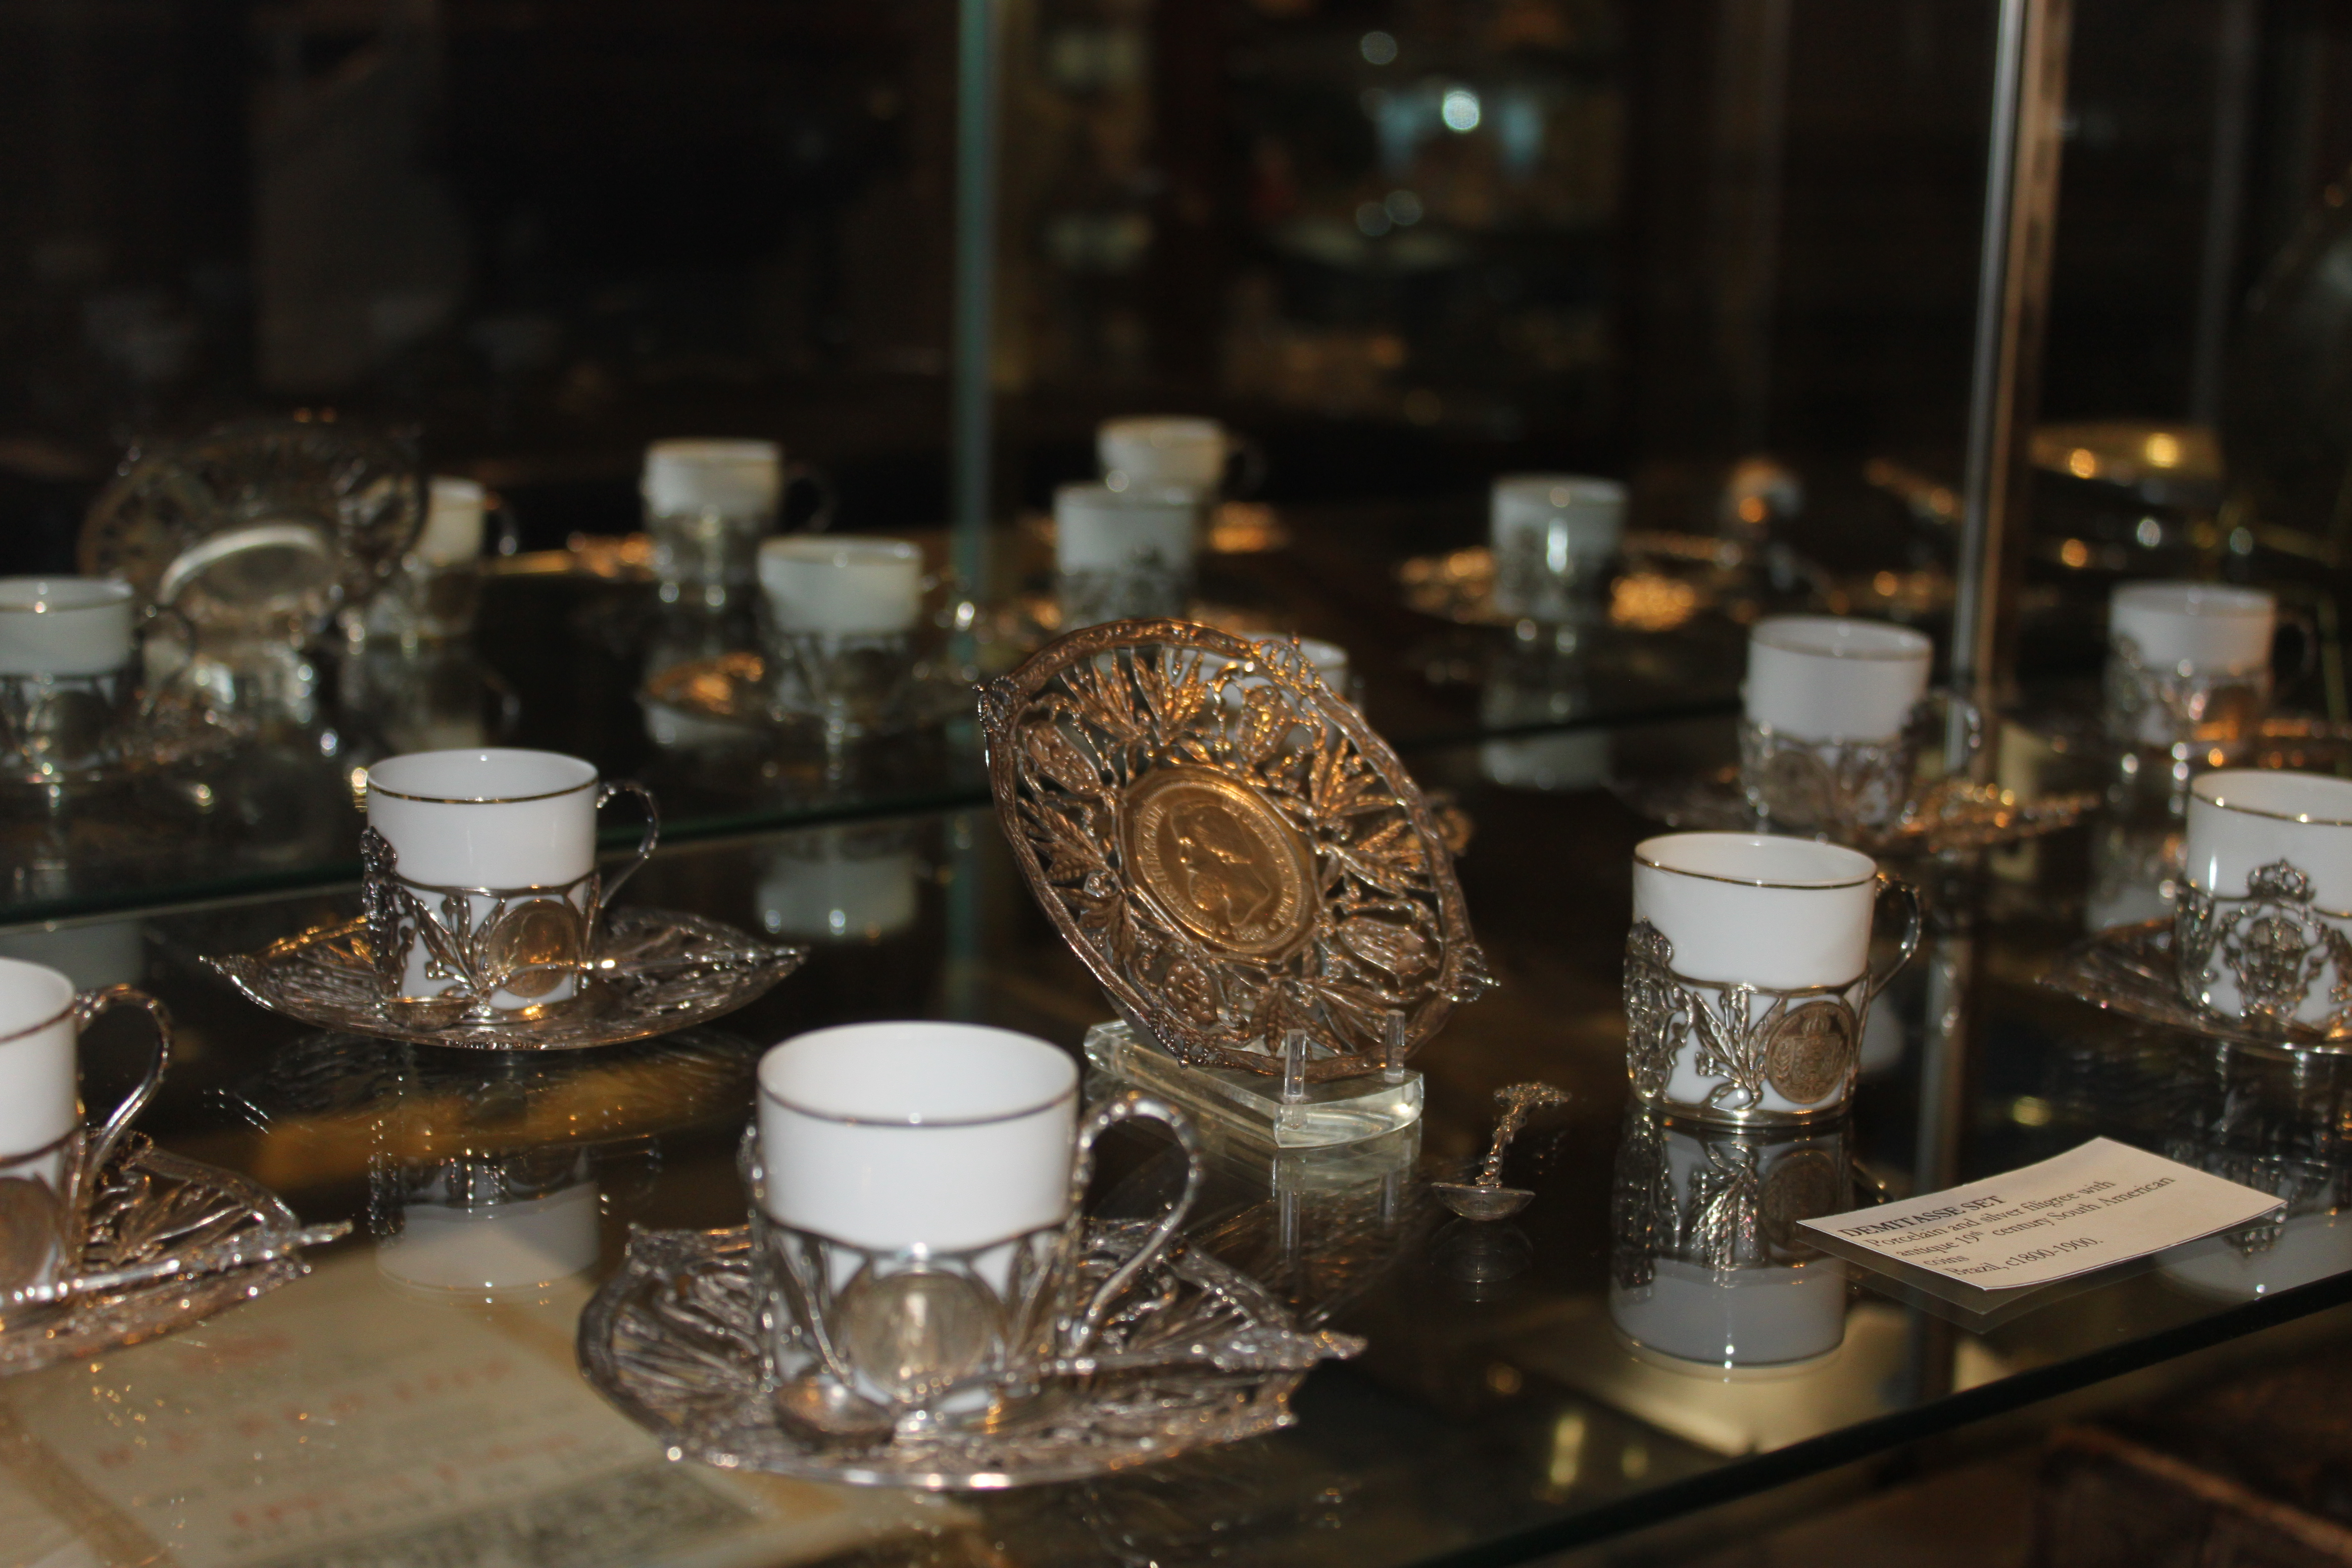 A Brazilian demitasse set made of silver include Brazilian coins no longer minted in each piece represents the Newton's time in Brazil. Bert received the Order of the Southern Cross from the Brazilian foreign minister and the Order of the Lion of Finland from the Brazilian President.